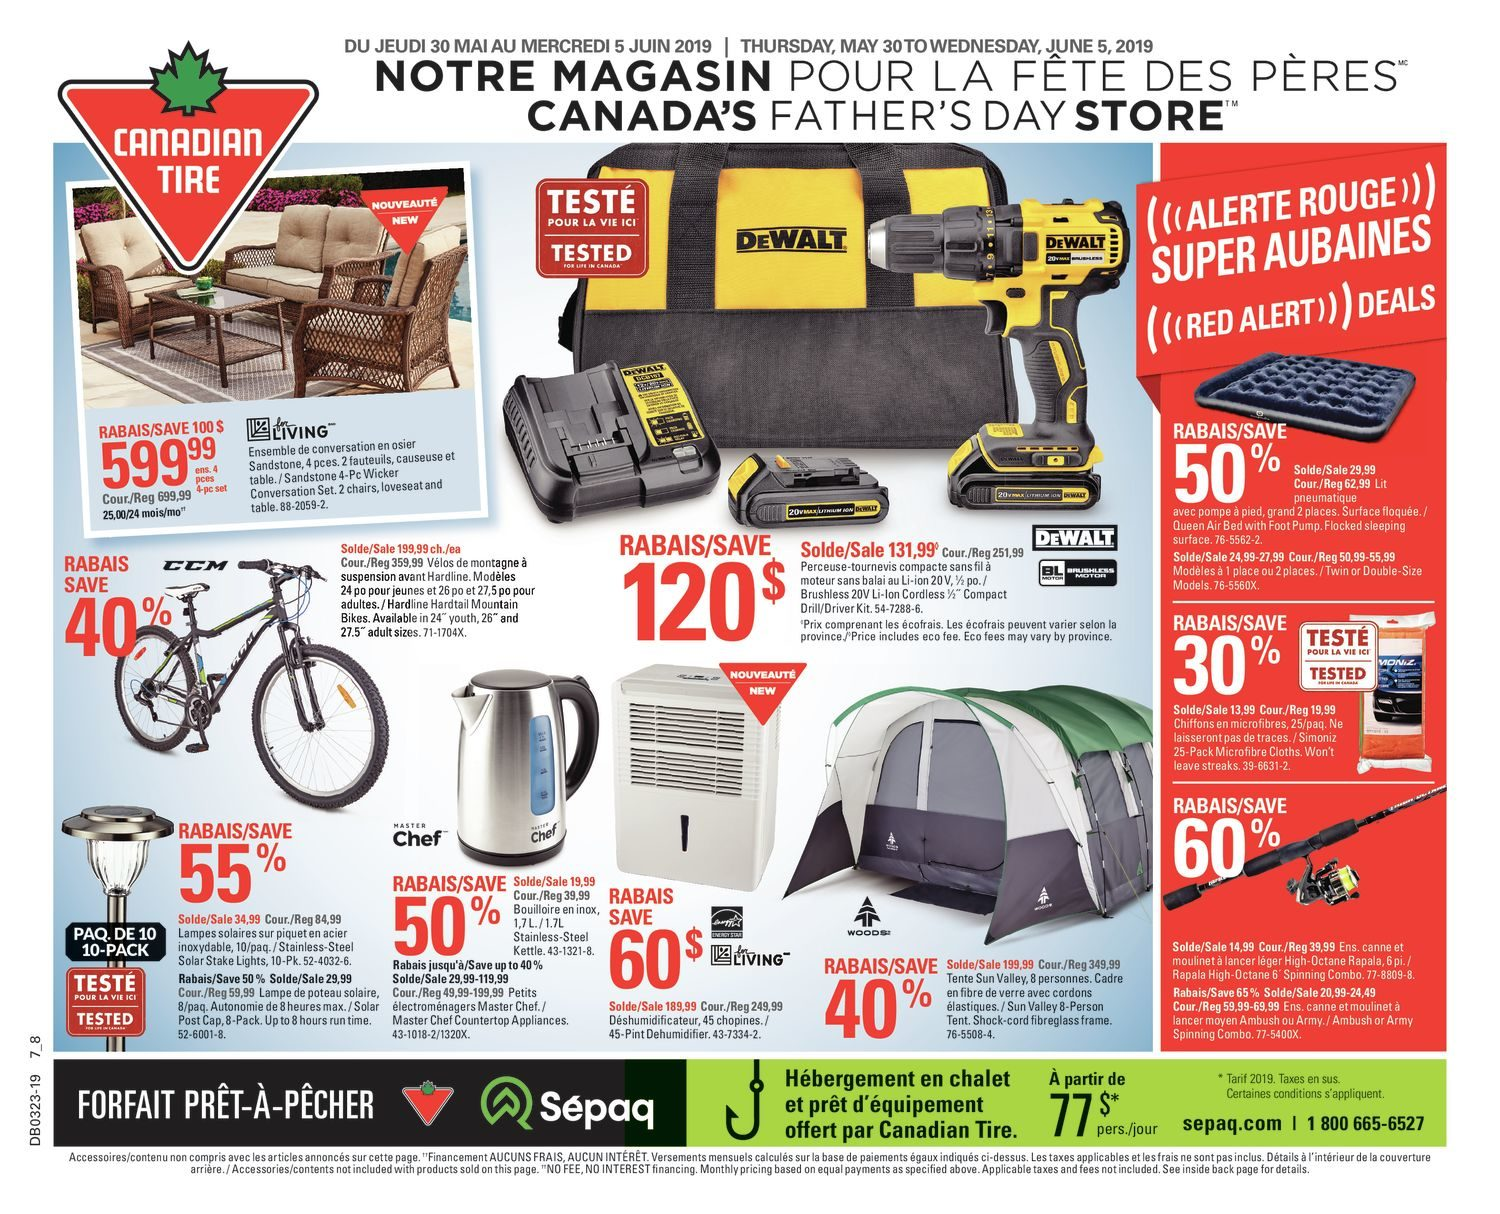 Pouf Exterieur Canadian Tire Canadian Tire Weekly Flyer Weekly Canada S Father S Day